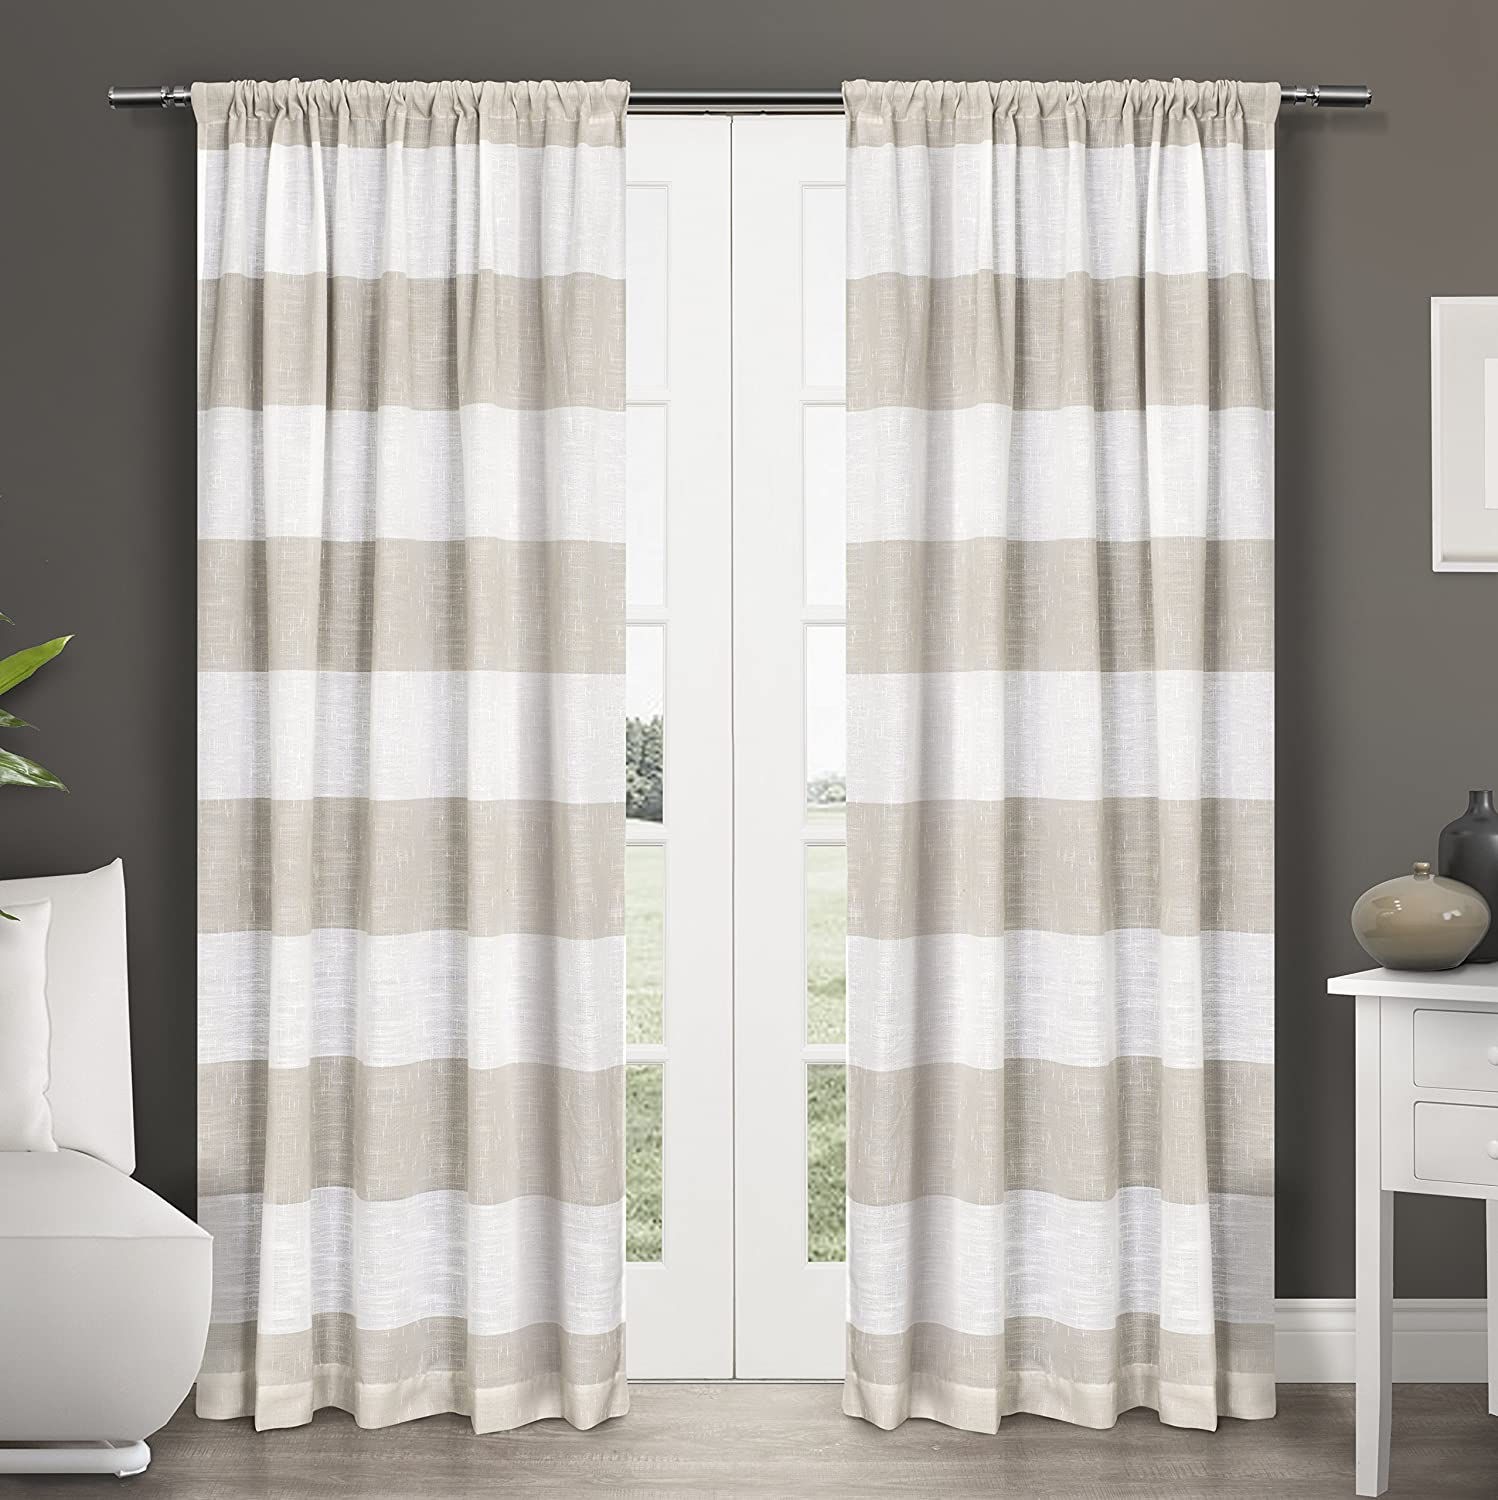 home curtains ifohl dp linen amazon kitchen darma sheer rod exclusive panel com pair curtain window pocket panels